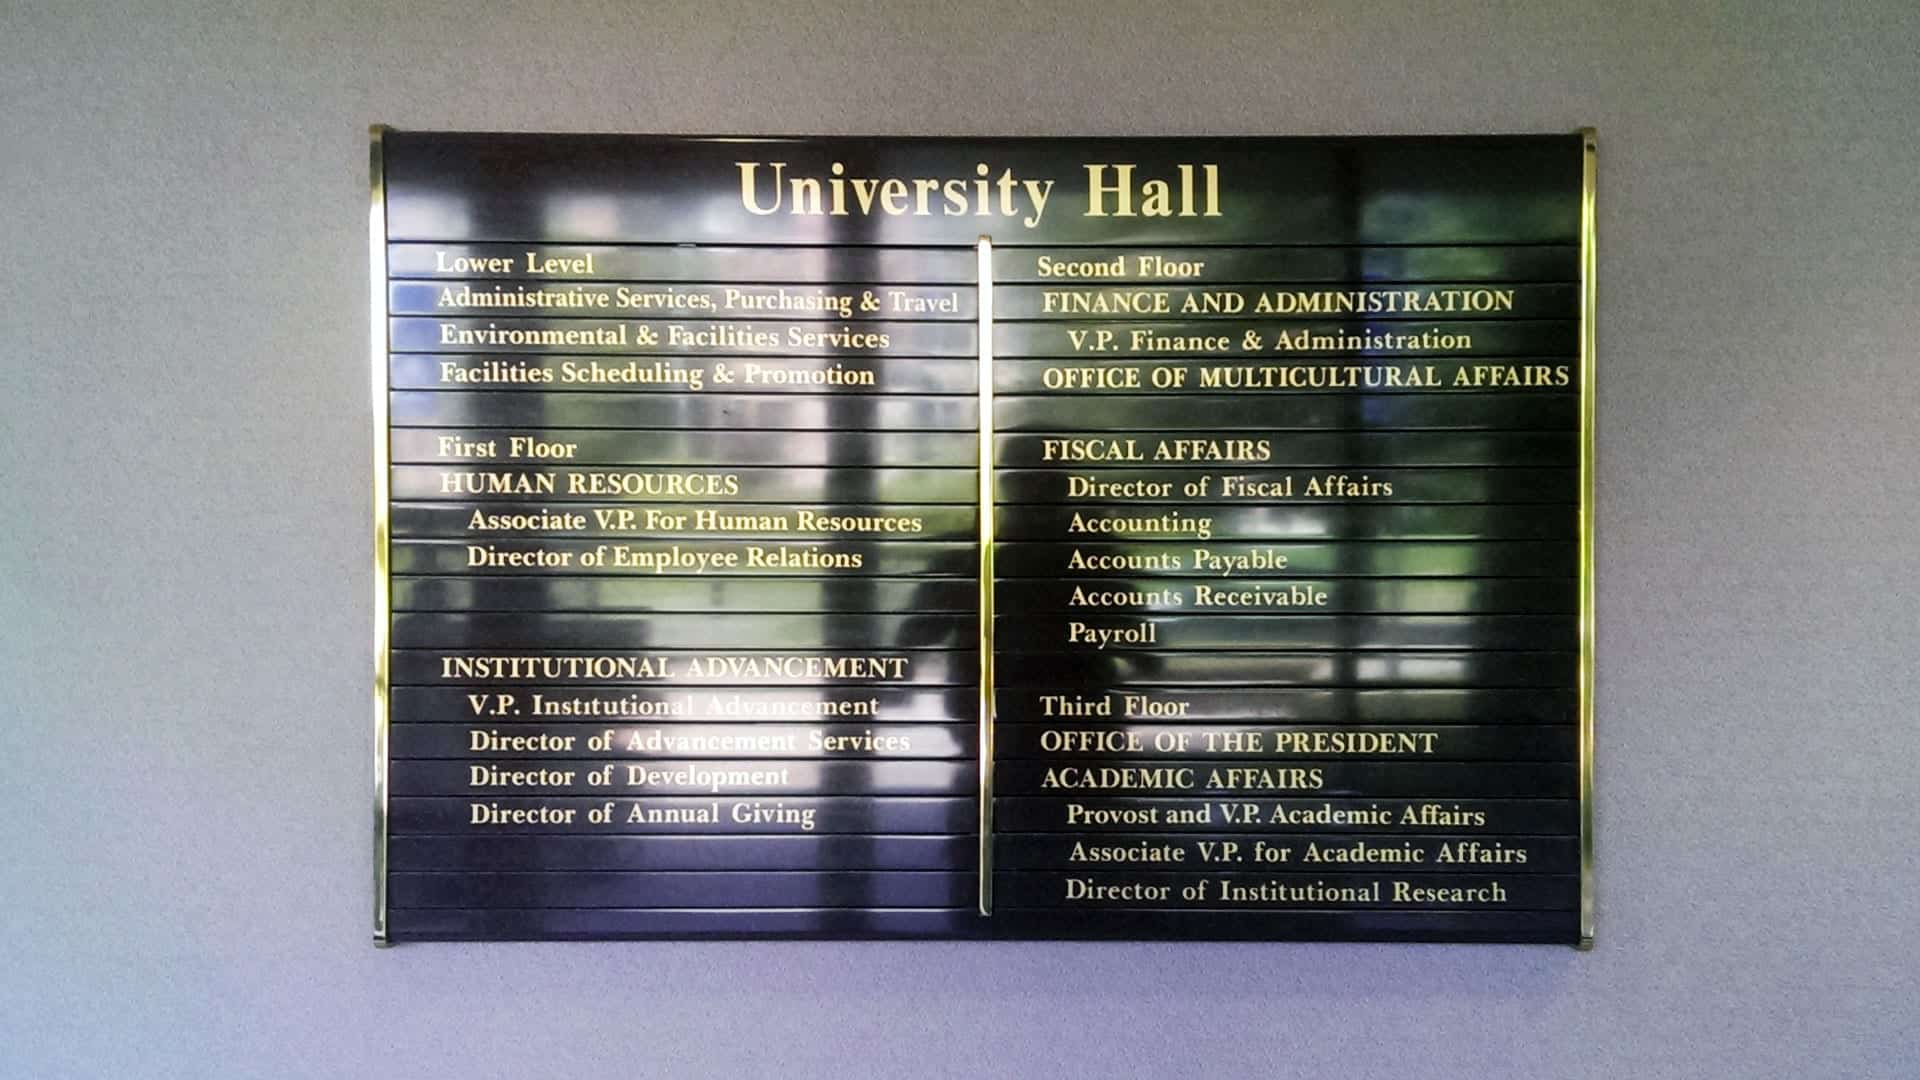 Interior directory for University Hall